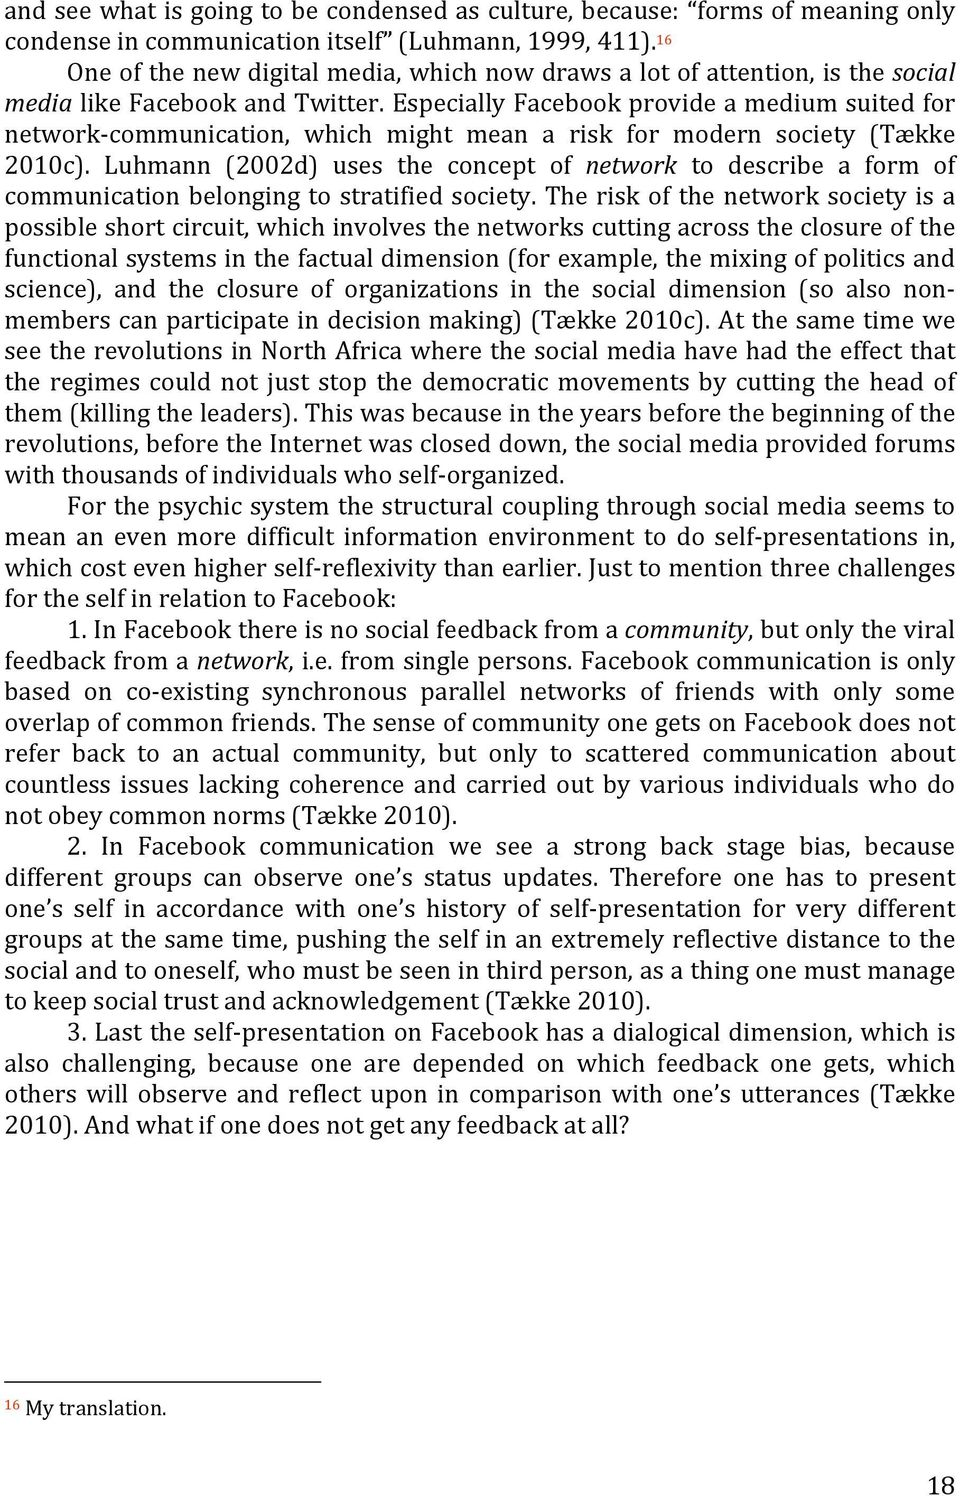 especiallyfacebookprovideamediumsuitedfor network communication, which might mean a risk for modern society (Tække 2010c).